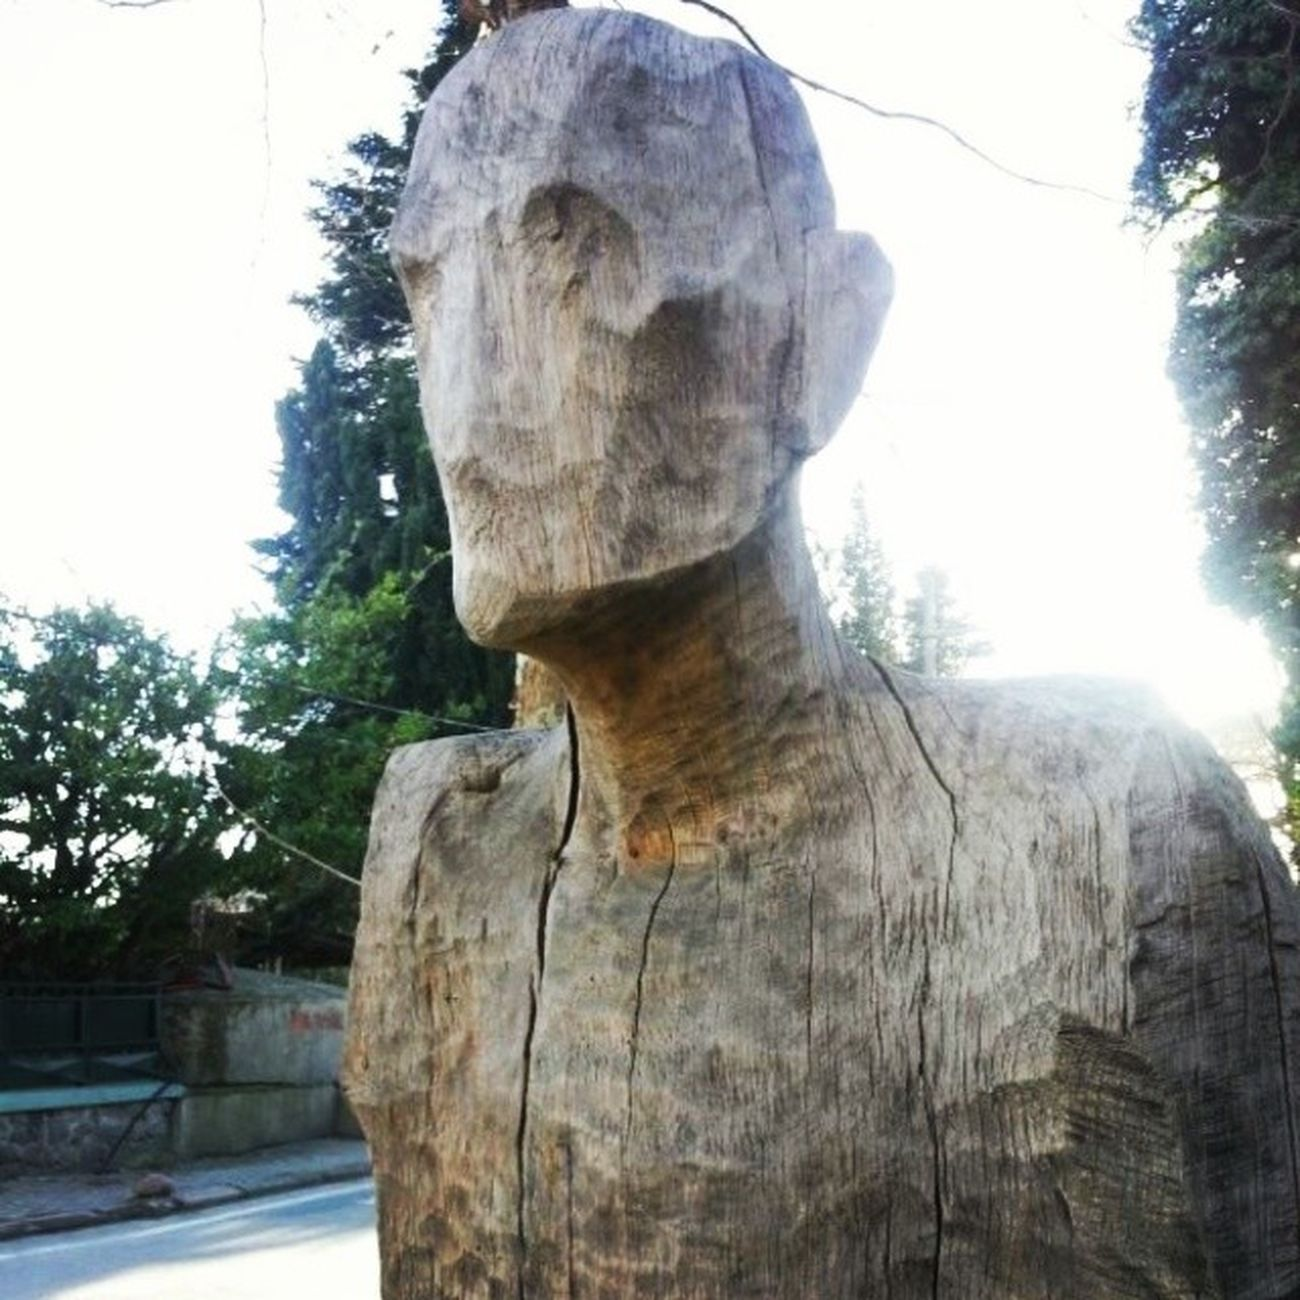 Woodensculpture Polonezkoy Adampol Istanbul turkey sculpture